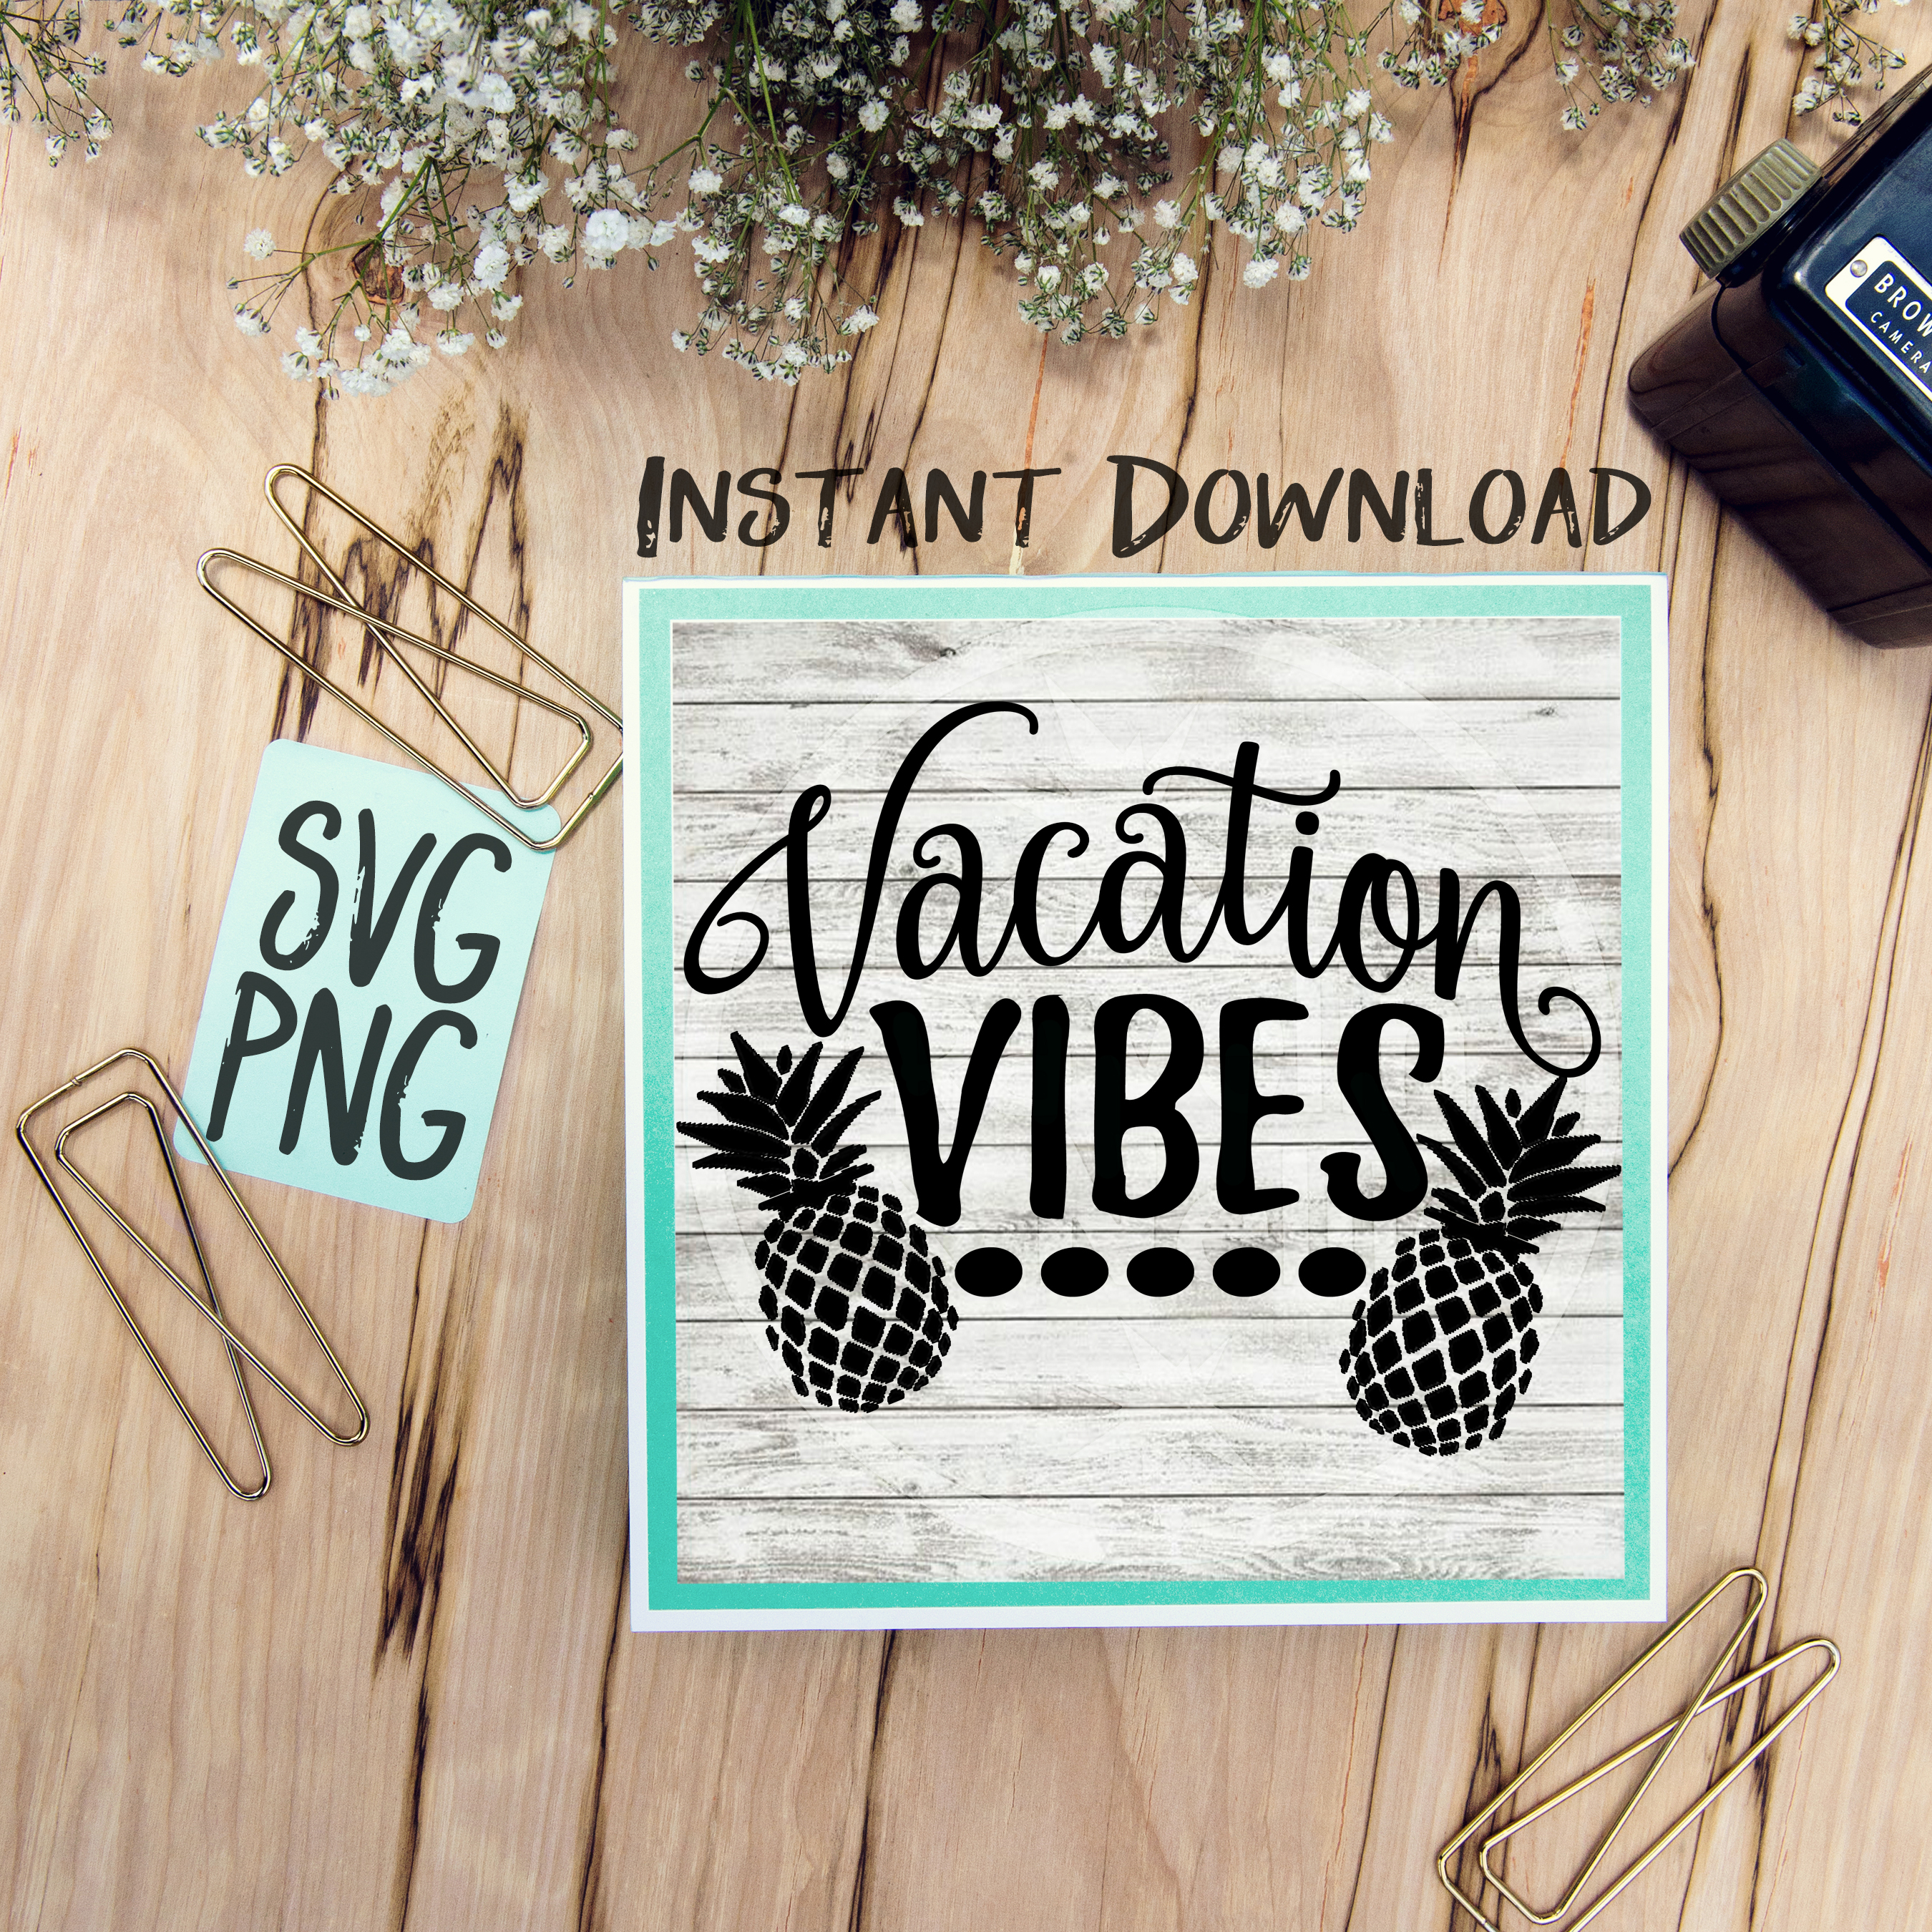 Vacation Vibes SVG Image Design for Vinyl Cutters Print DIY Shirt Design Cruise Vacation Tropical Brother Cricut Cameo Cutout example image 1